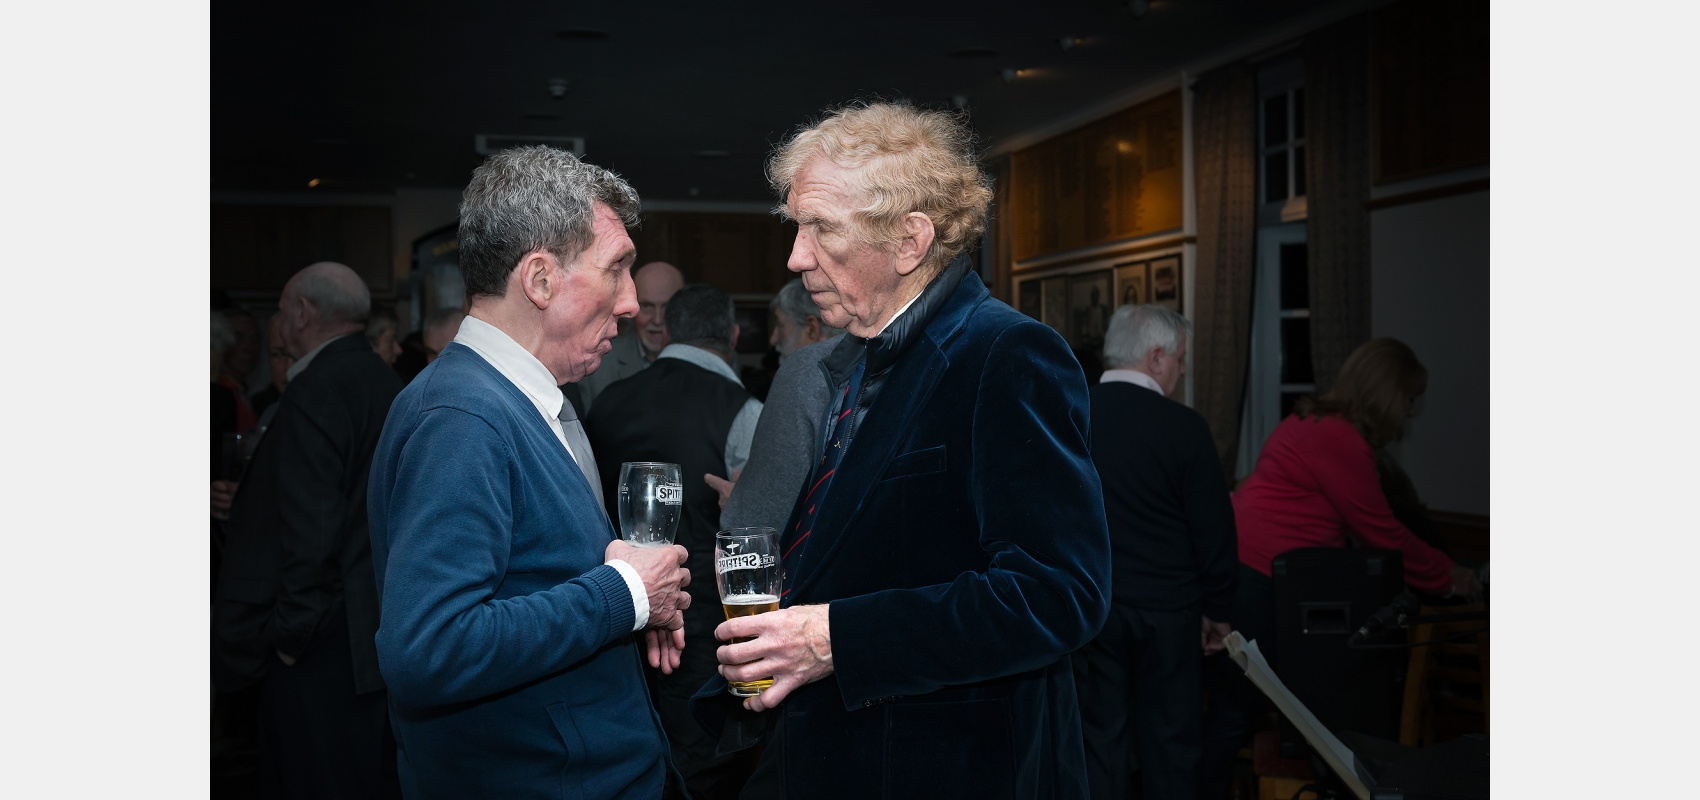 Event photography. Club celebrations, two friends in conversation.